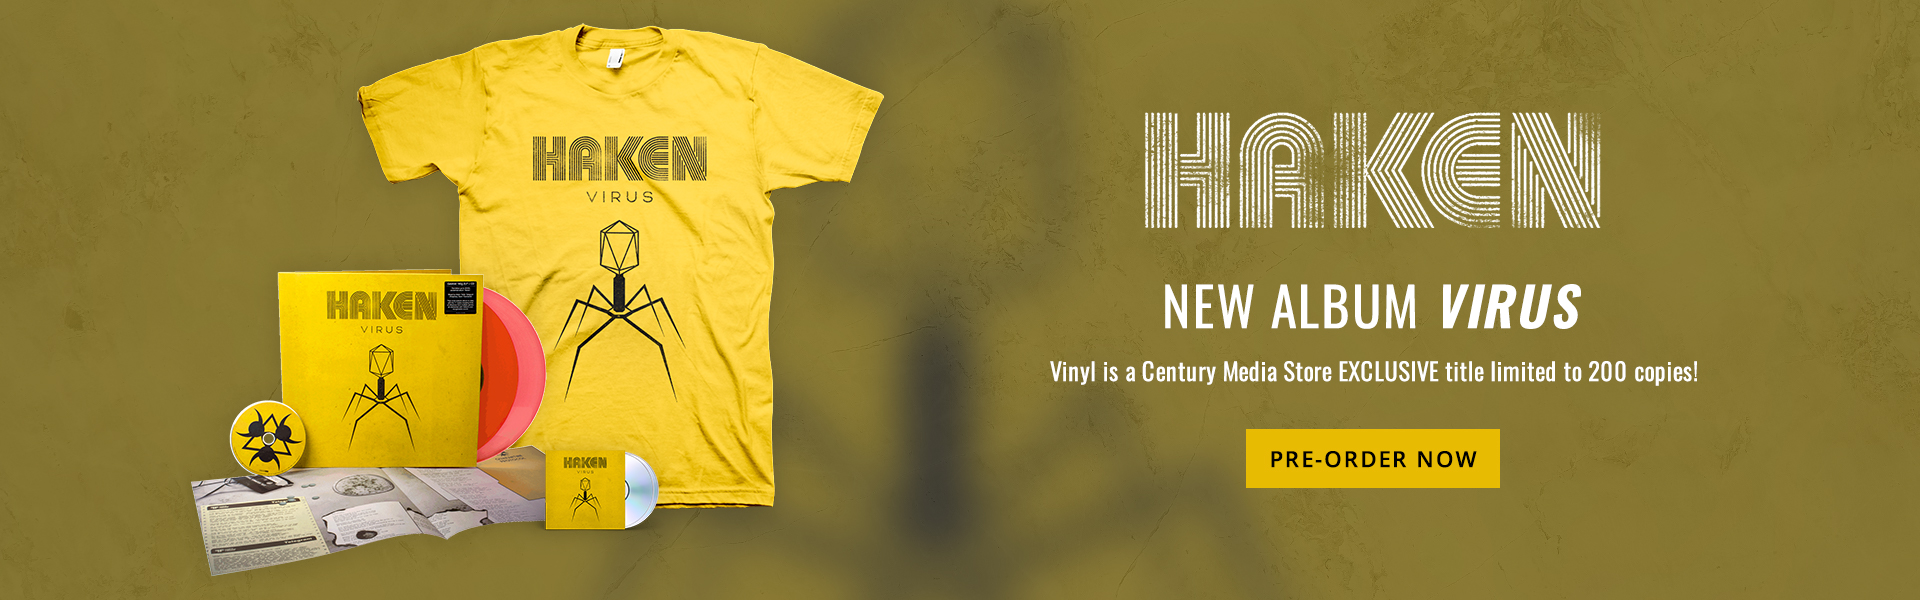 Haken | New album Virus. | Vinyl is a Century Media Store EXCLUSIVE title limited to 200 copies! | Pre-order Now.